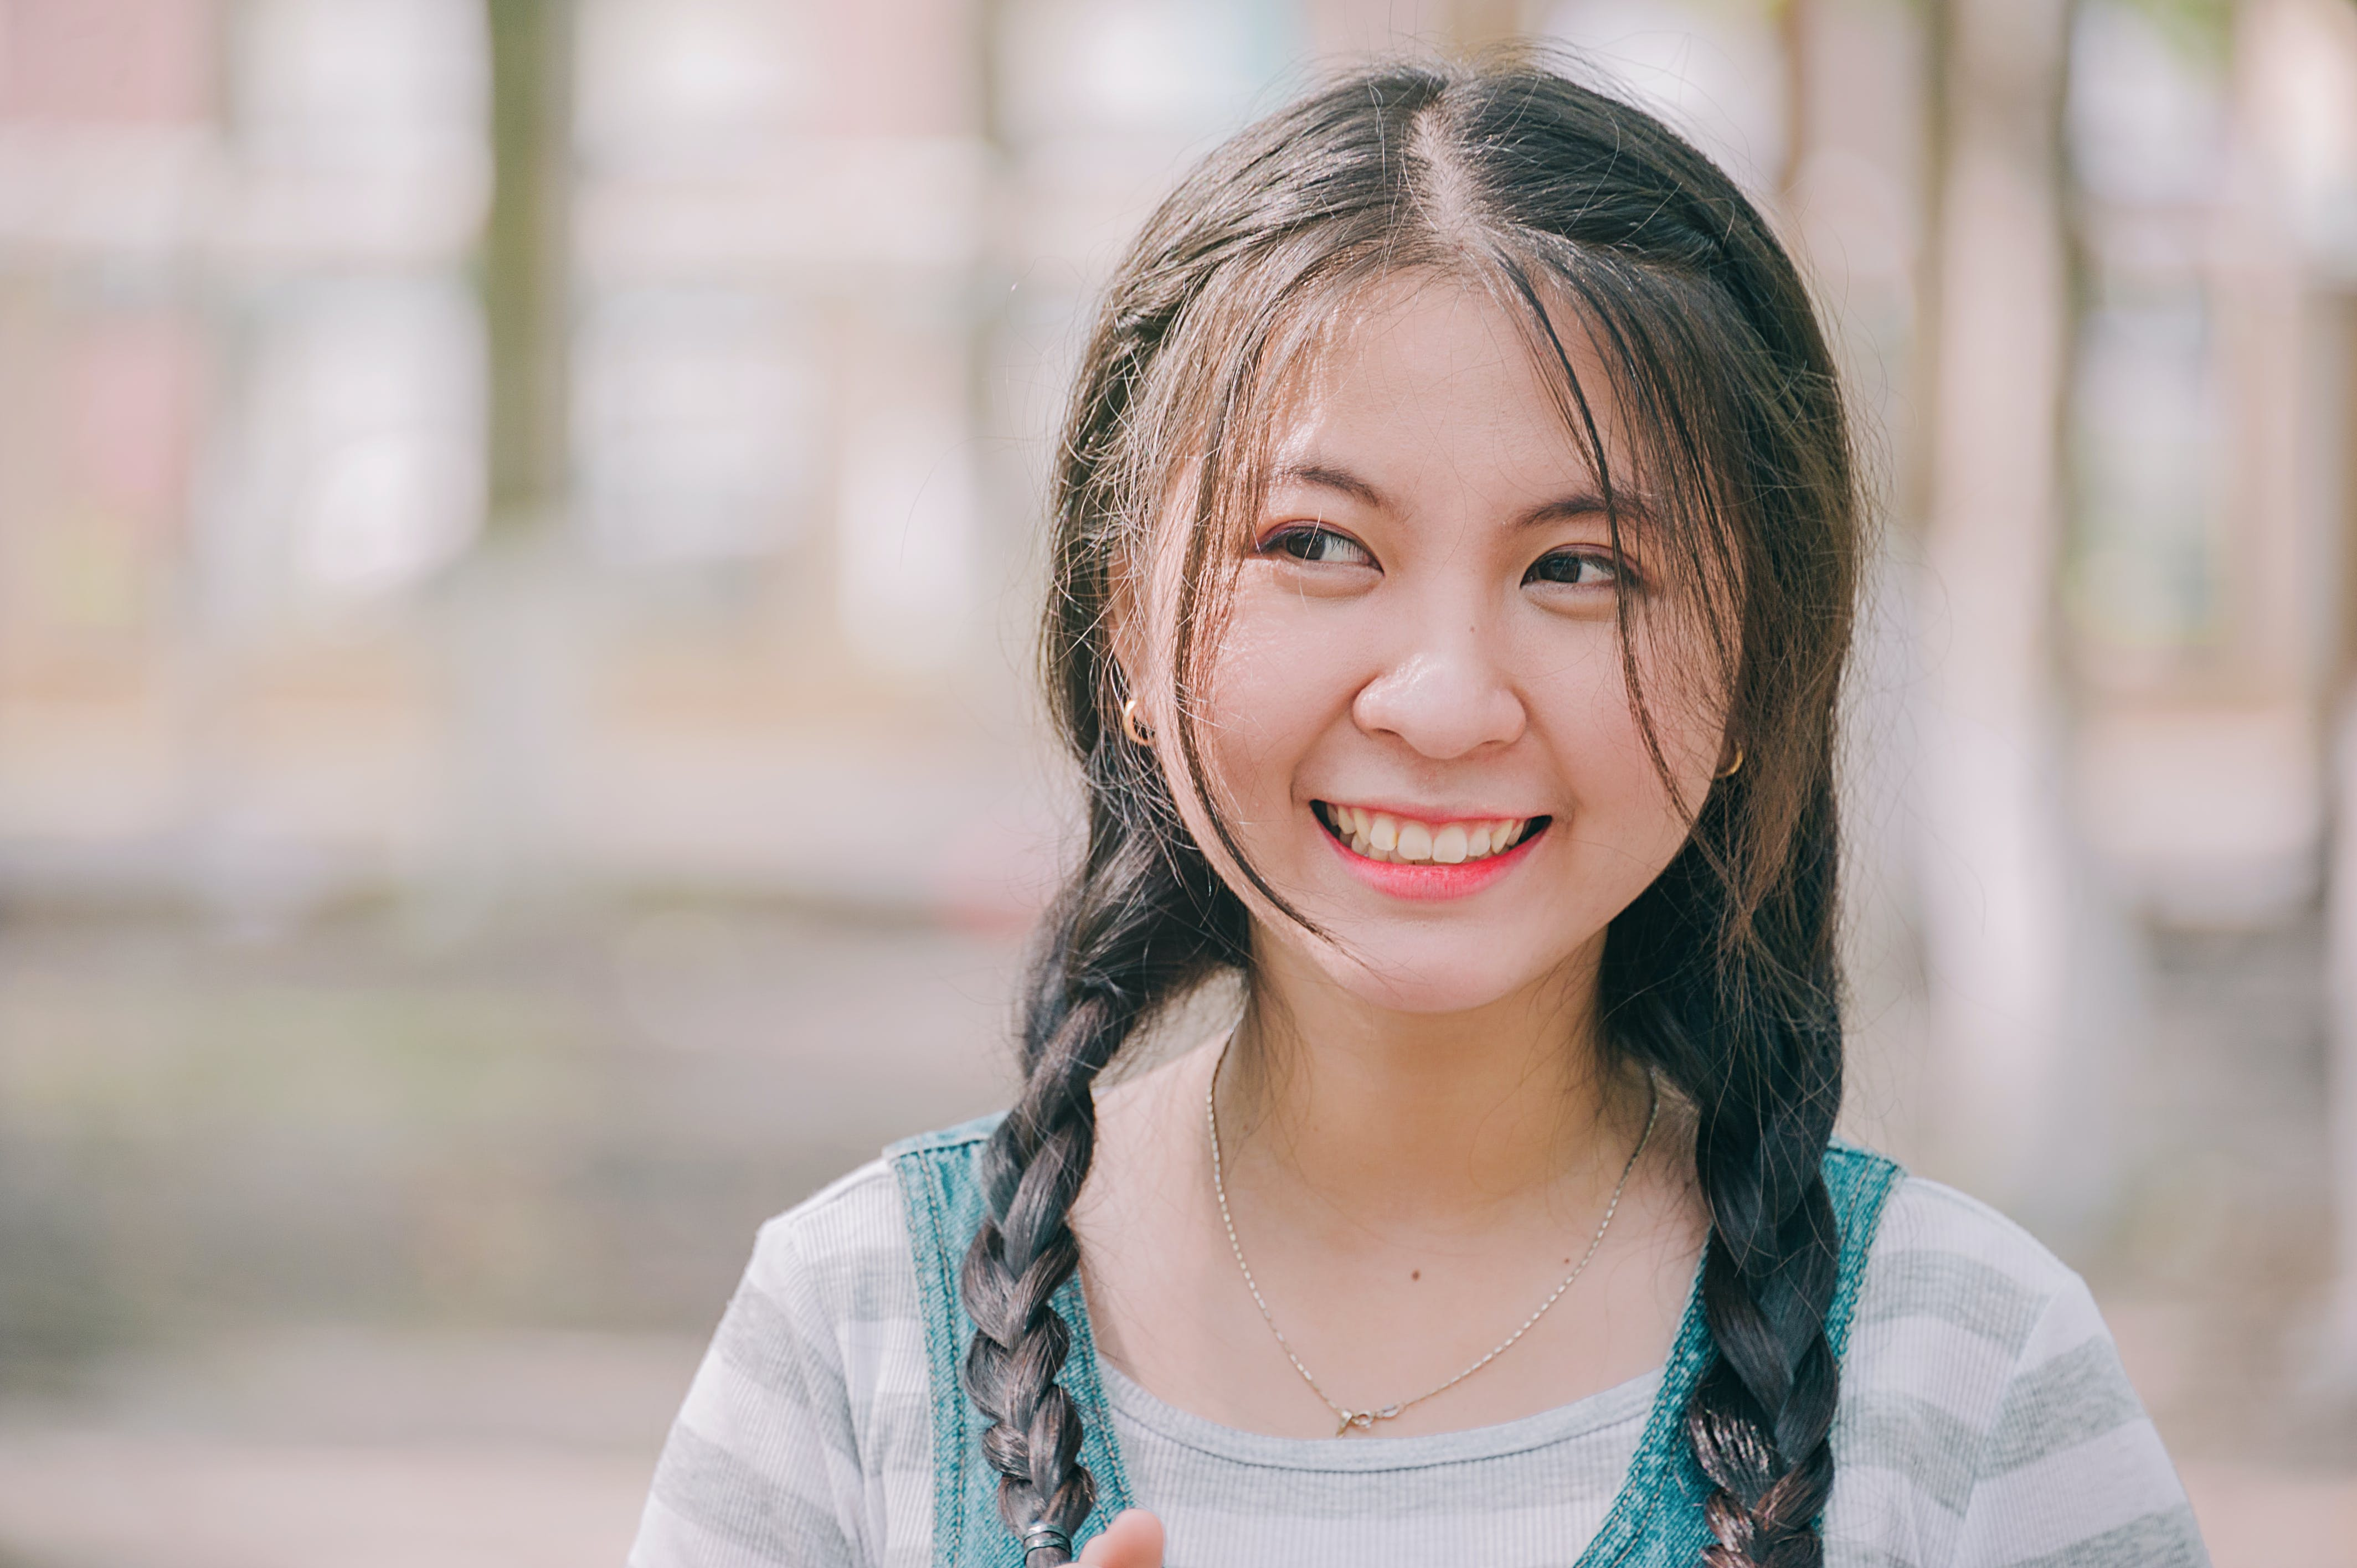 Selective Focus of Girl Smiling